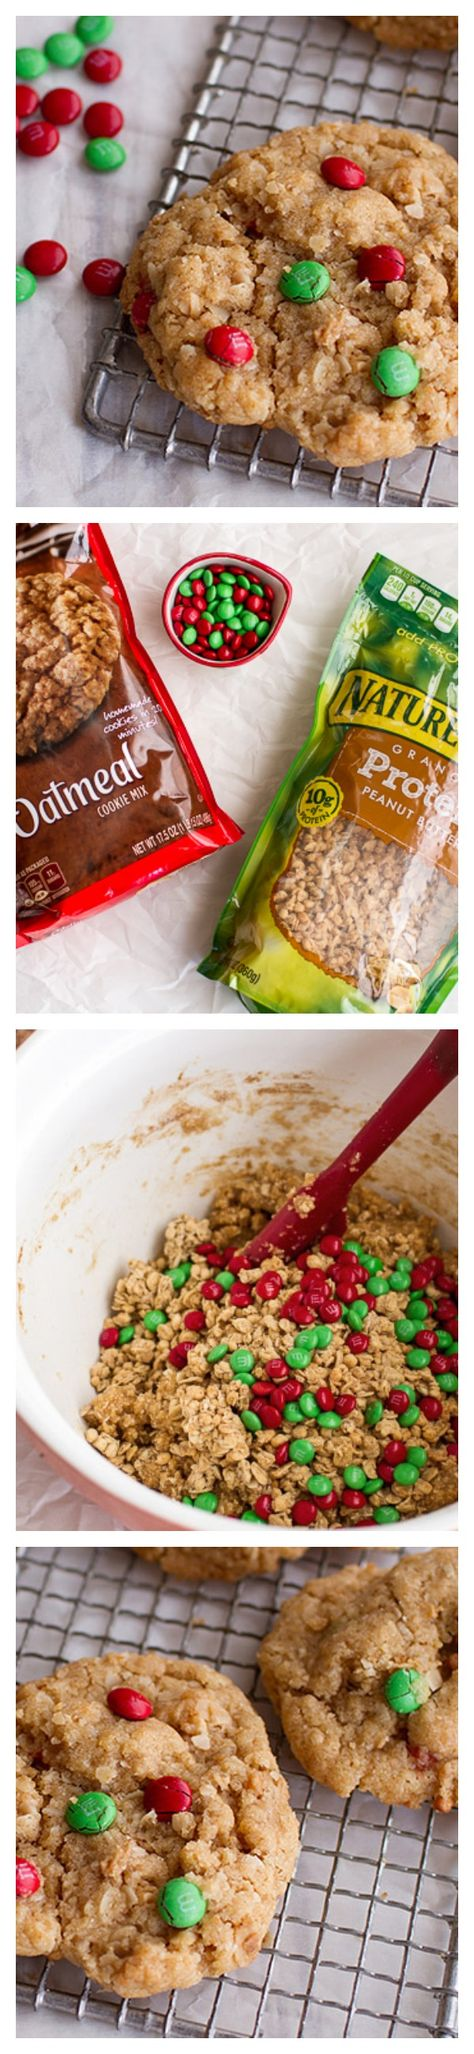 Try this fun oatmeal cookie for your next holiday party!